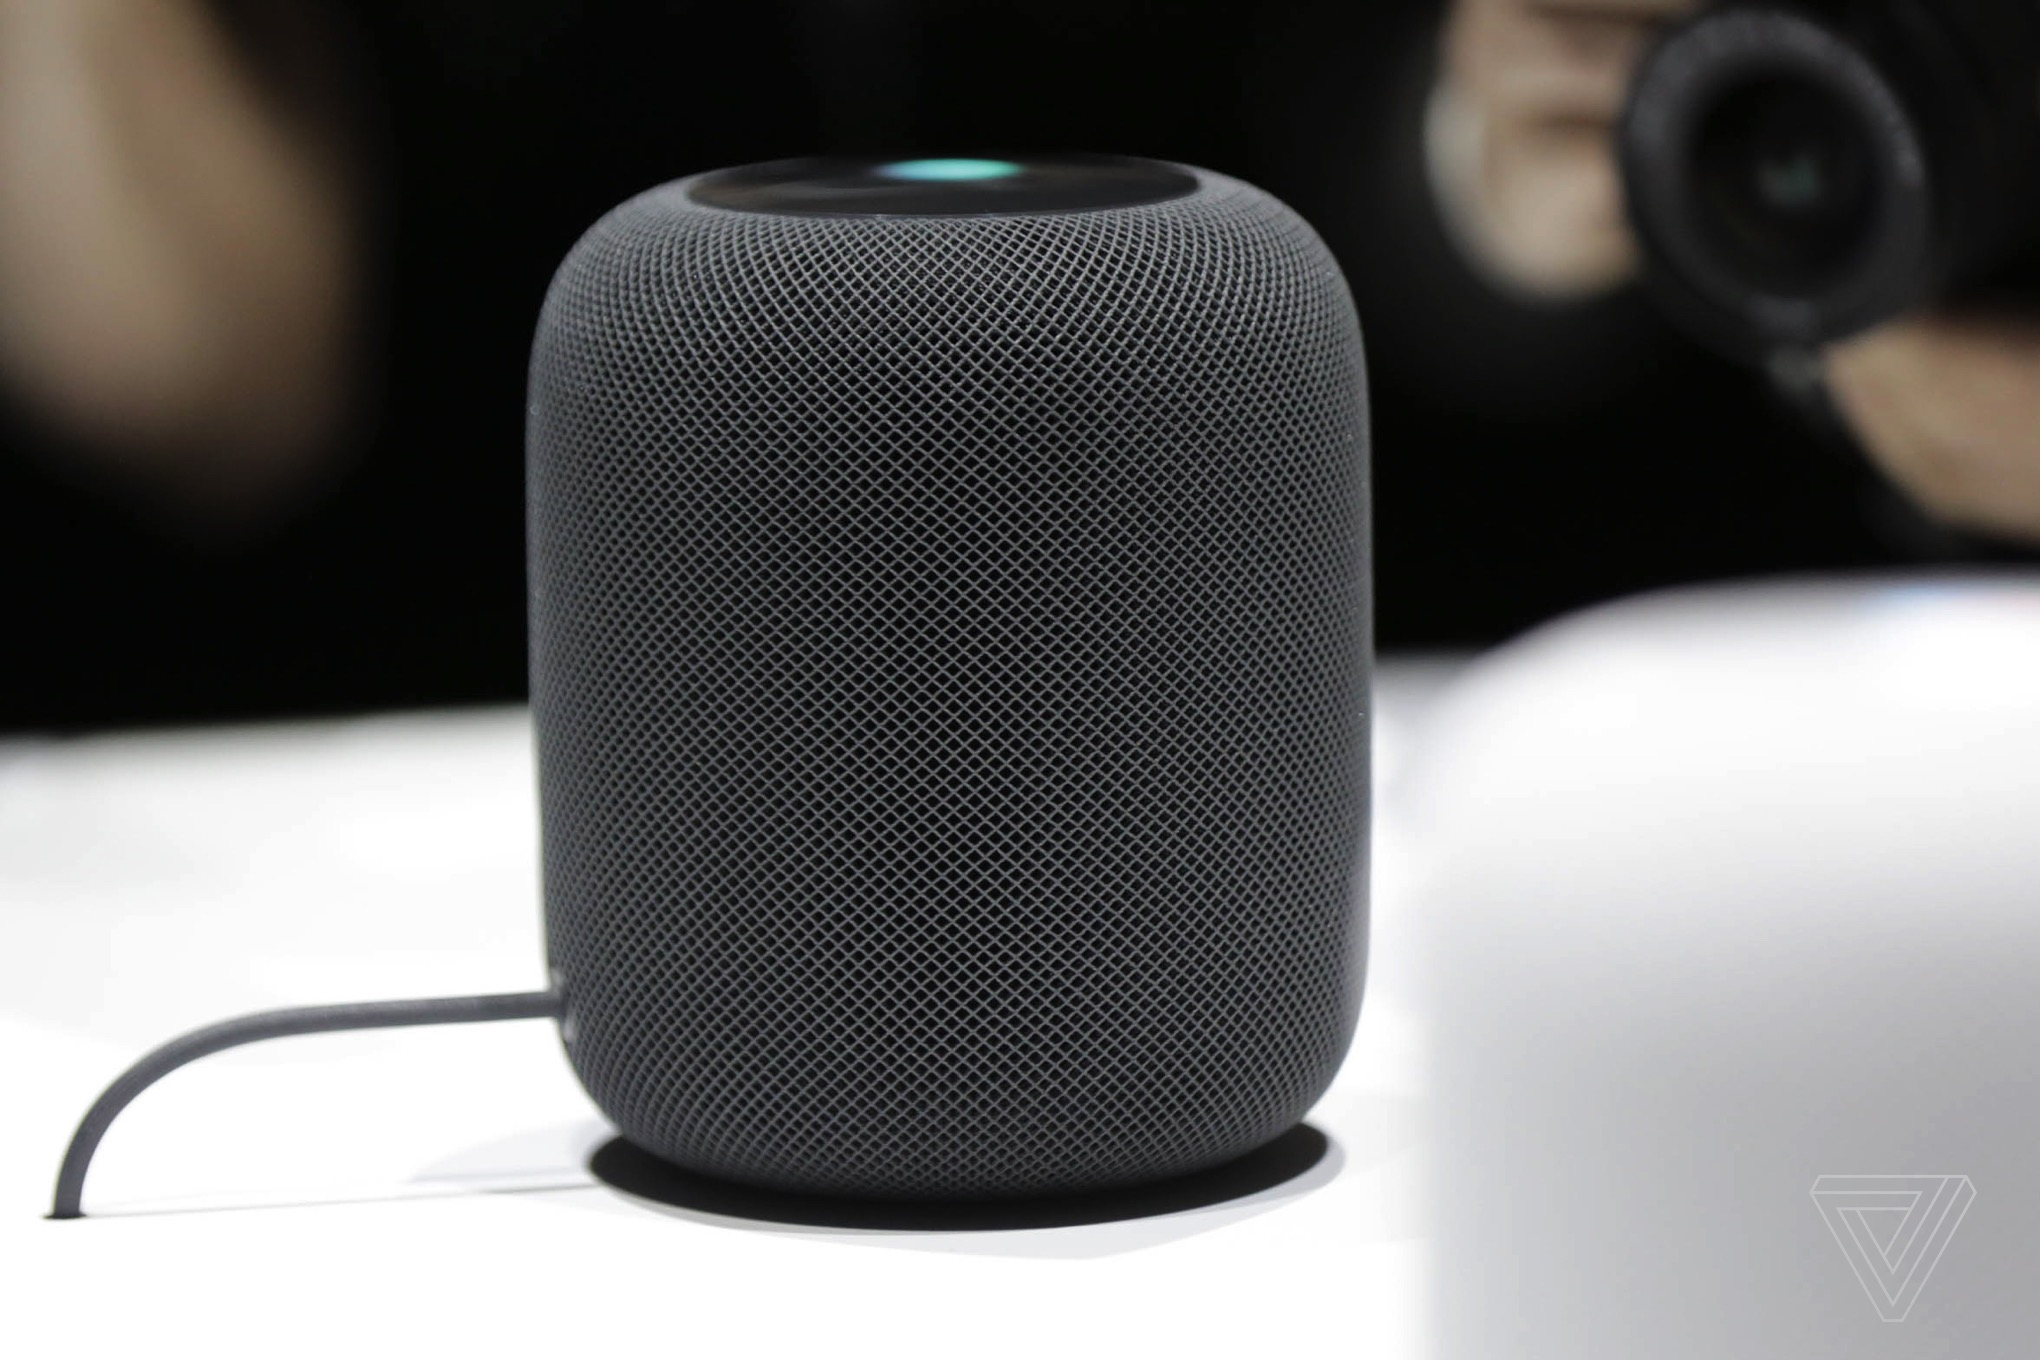 where does the smart home fit into apple 39 s homepod the verge. Black Bedroom Furniture Sets. Home Design Ideas